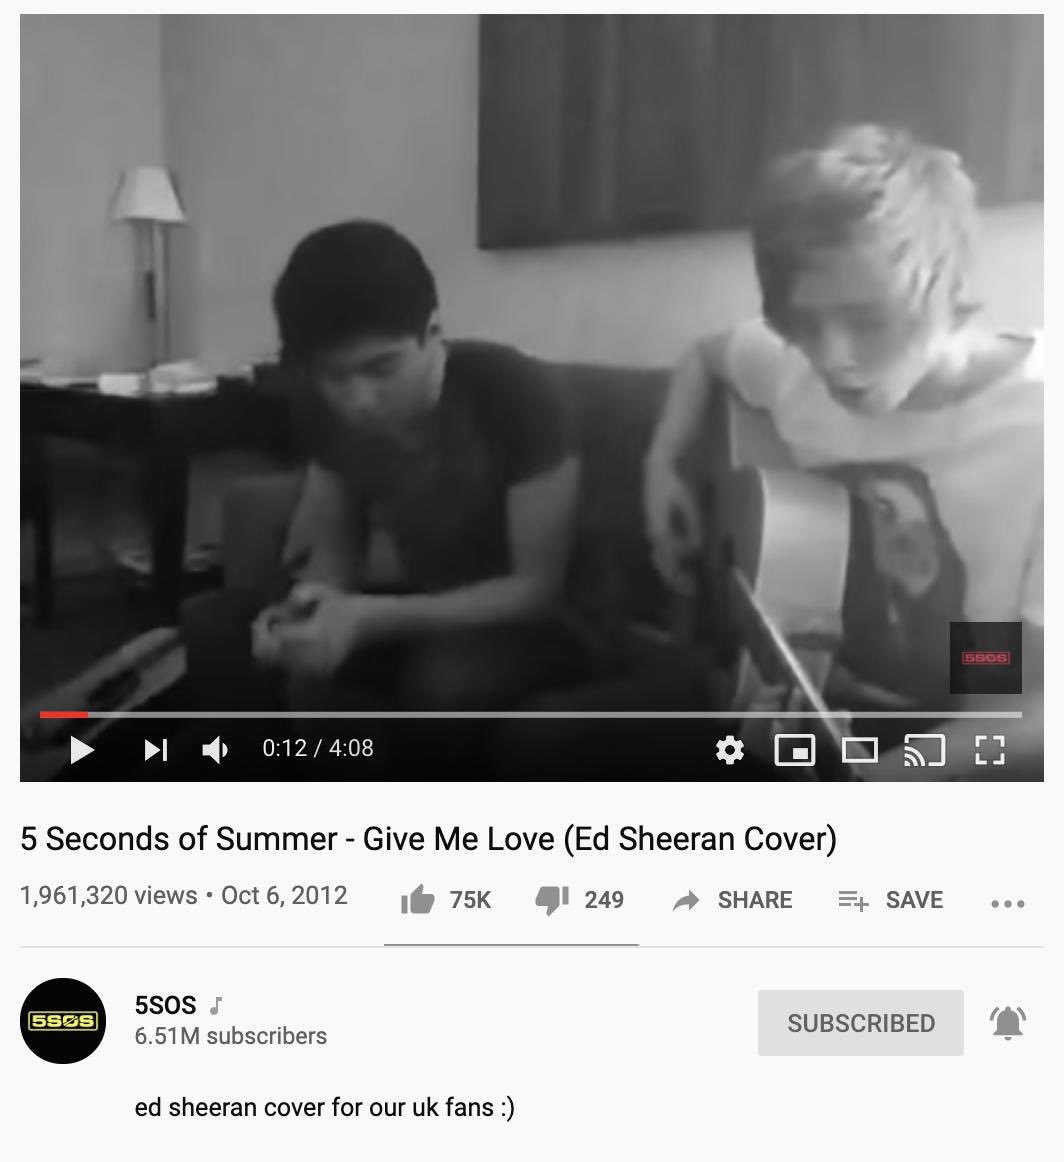 this lil baby turns 7 years old. it was the first time we went to London. we hadn't posted in a couple of weeks and Ash and I yelled at Cal & Luke to record something and they did this in the hotel room next to ours. we probably ate Greggs afterwards